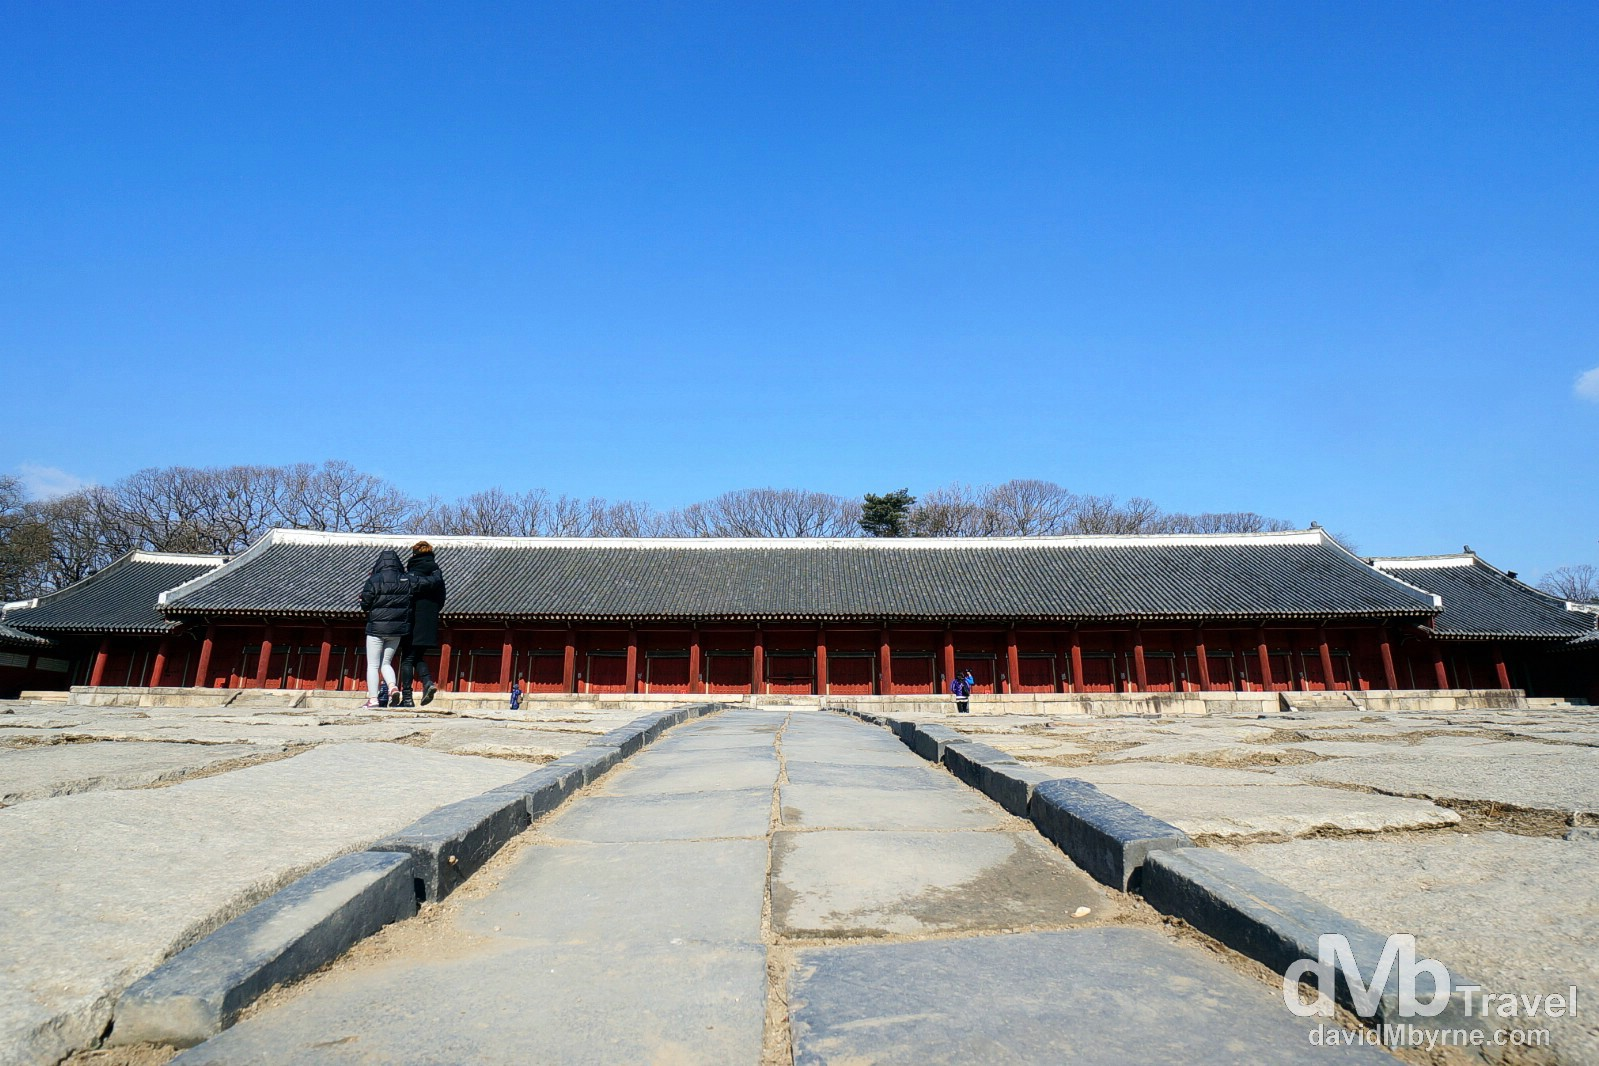 Jeongjeon, the largest building in the UNESCO listed Jongmyo Shrine in Seoul, South Korea. January 18th, 2014.